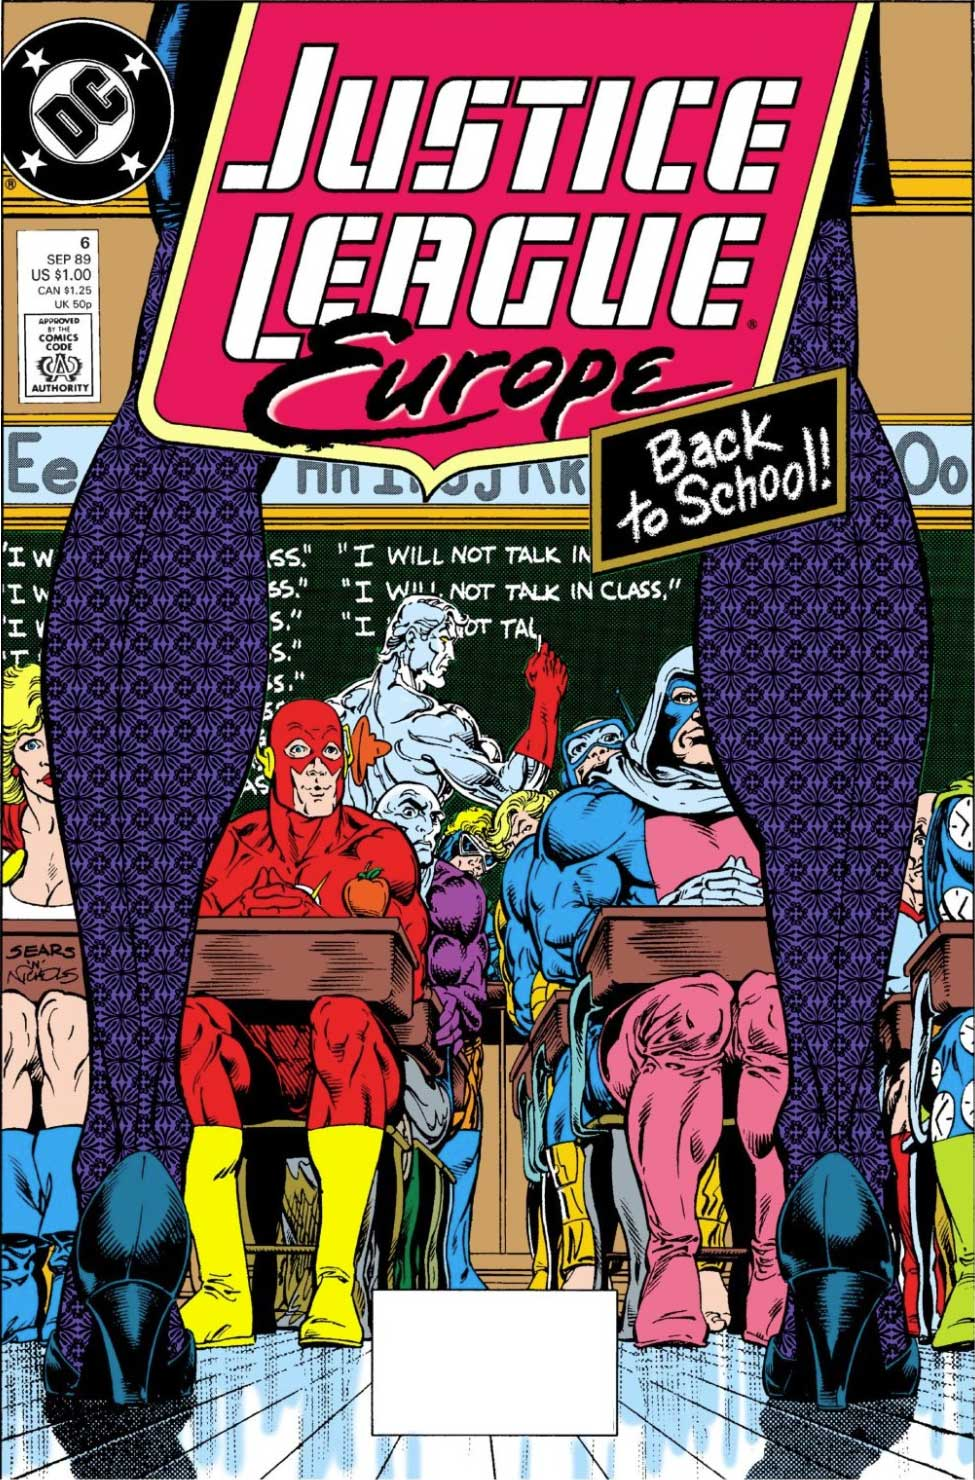 Justice League Europe #6 cover by Bart Sears and Art Nichols